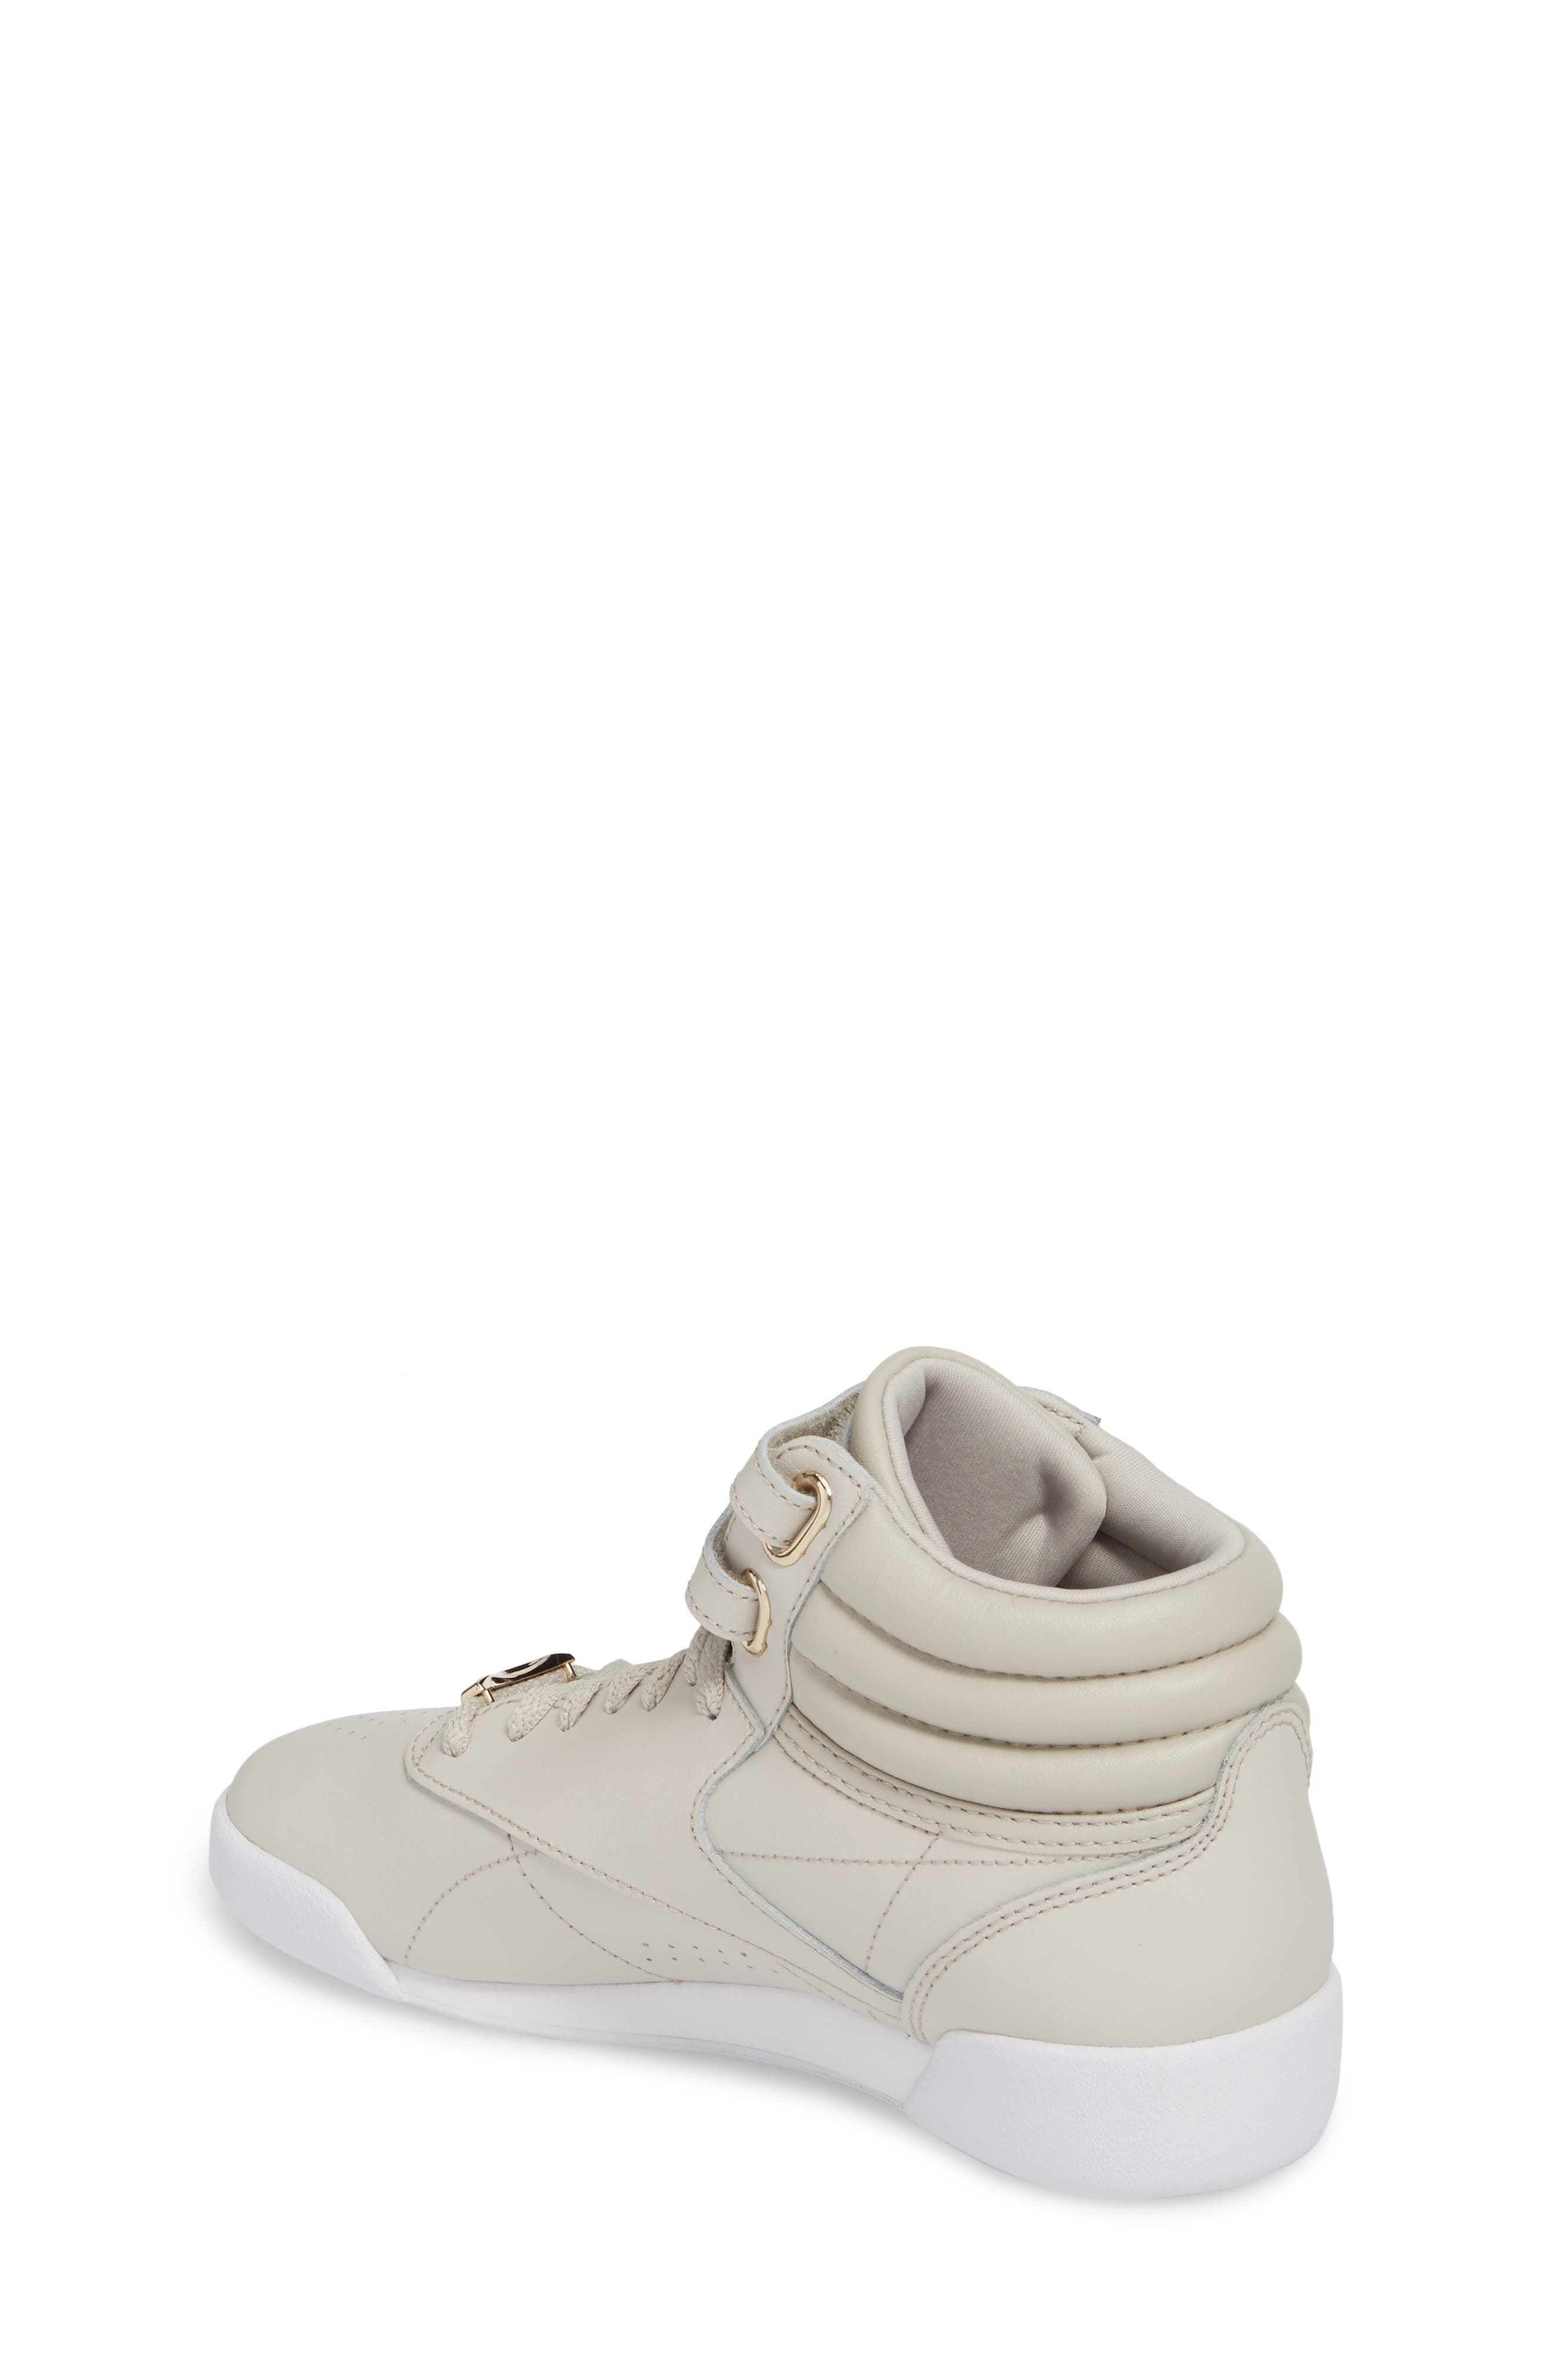 Freestyle Hi Muted Sneaker,                             Alternate thumbnail 2, color,                             Sandstone/ White